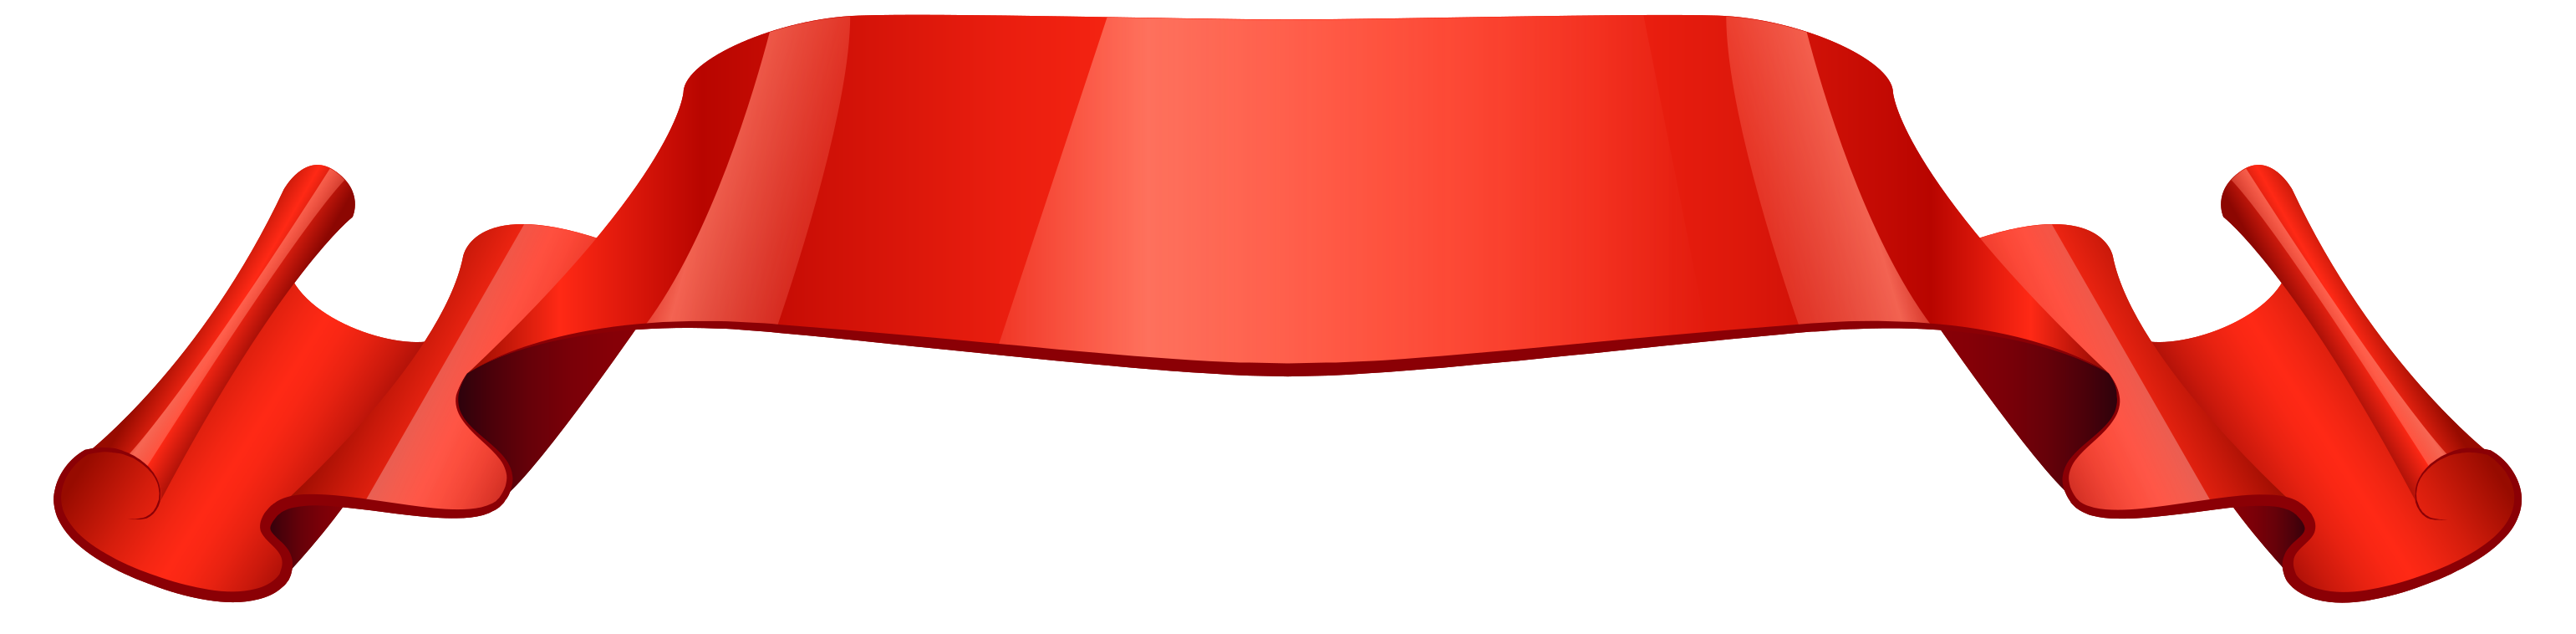 rood glanzend lint png